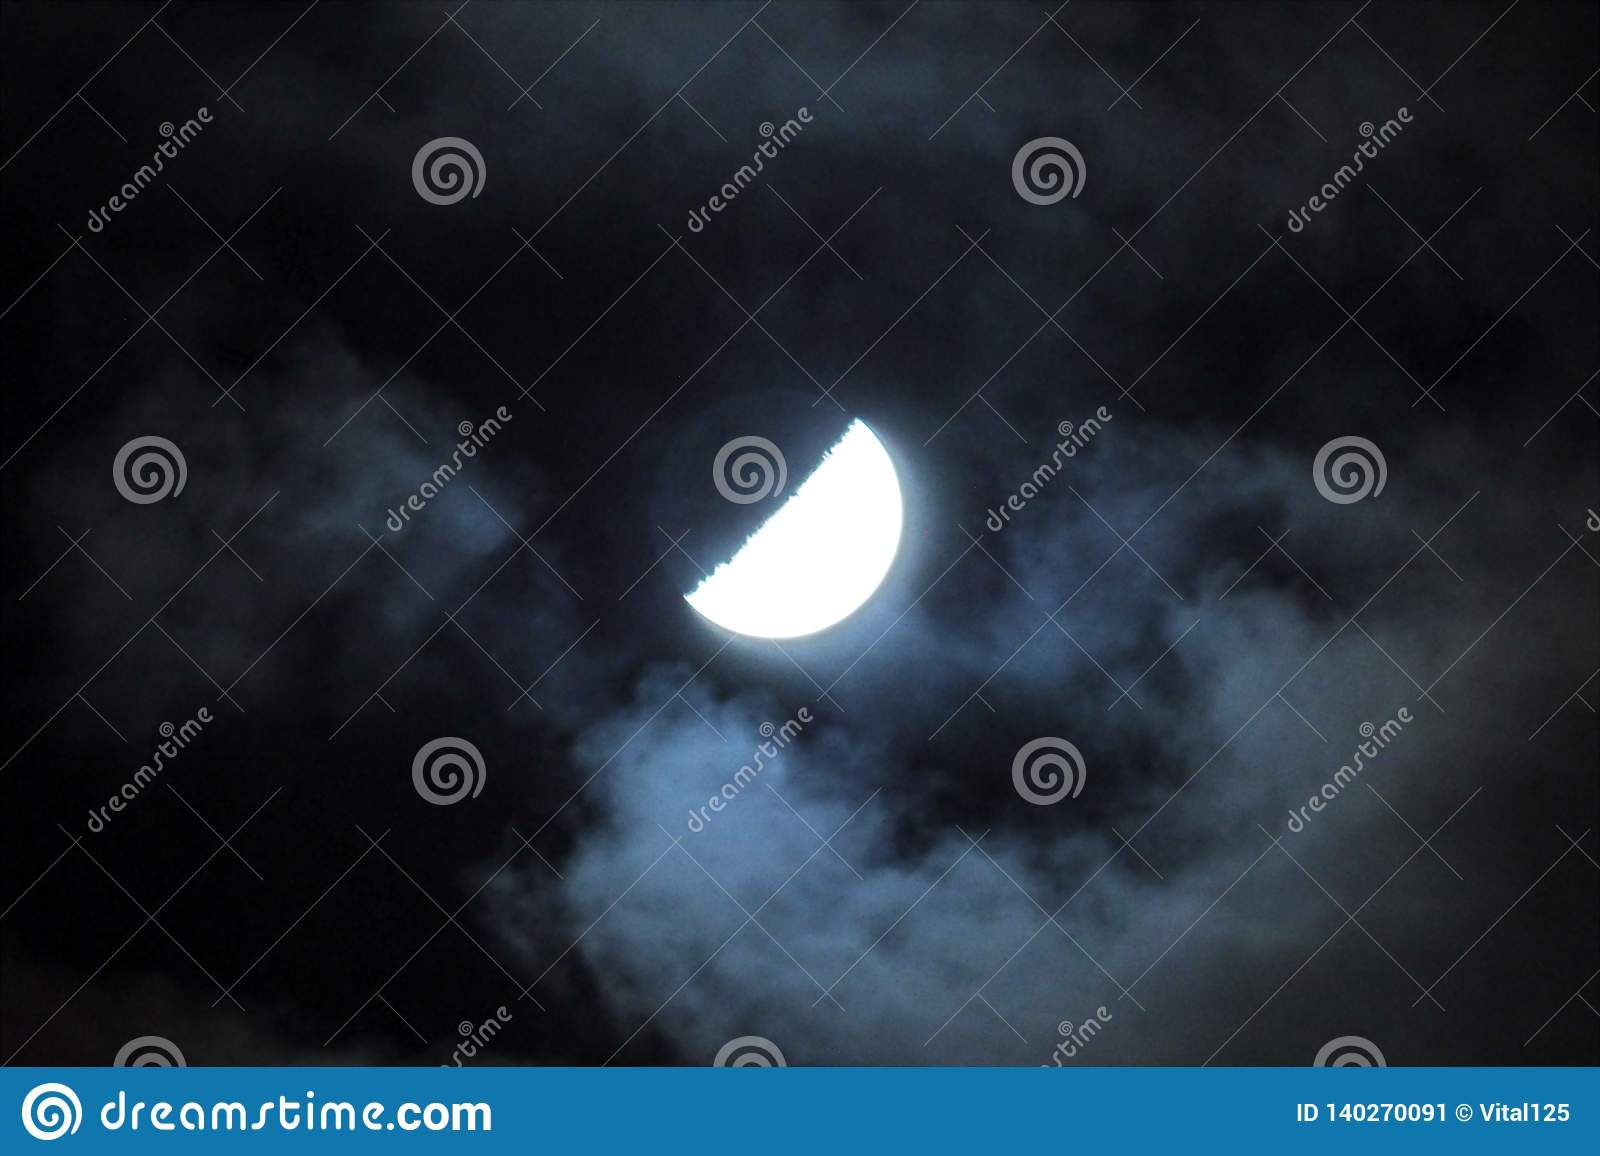 Moon lights and clouds observing on ksy